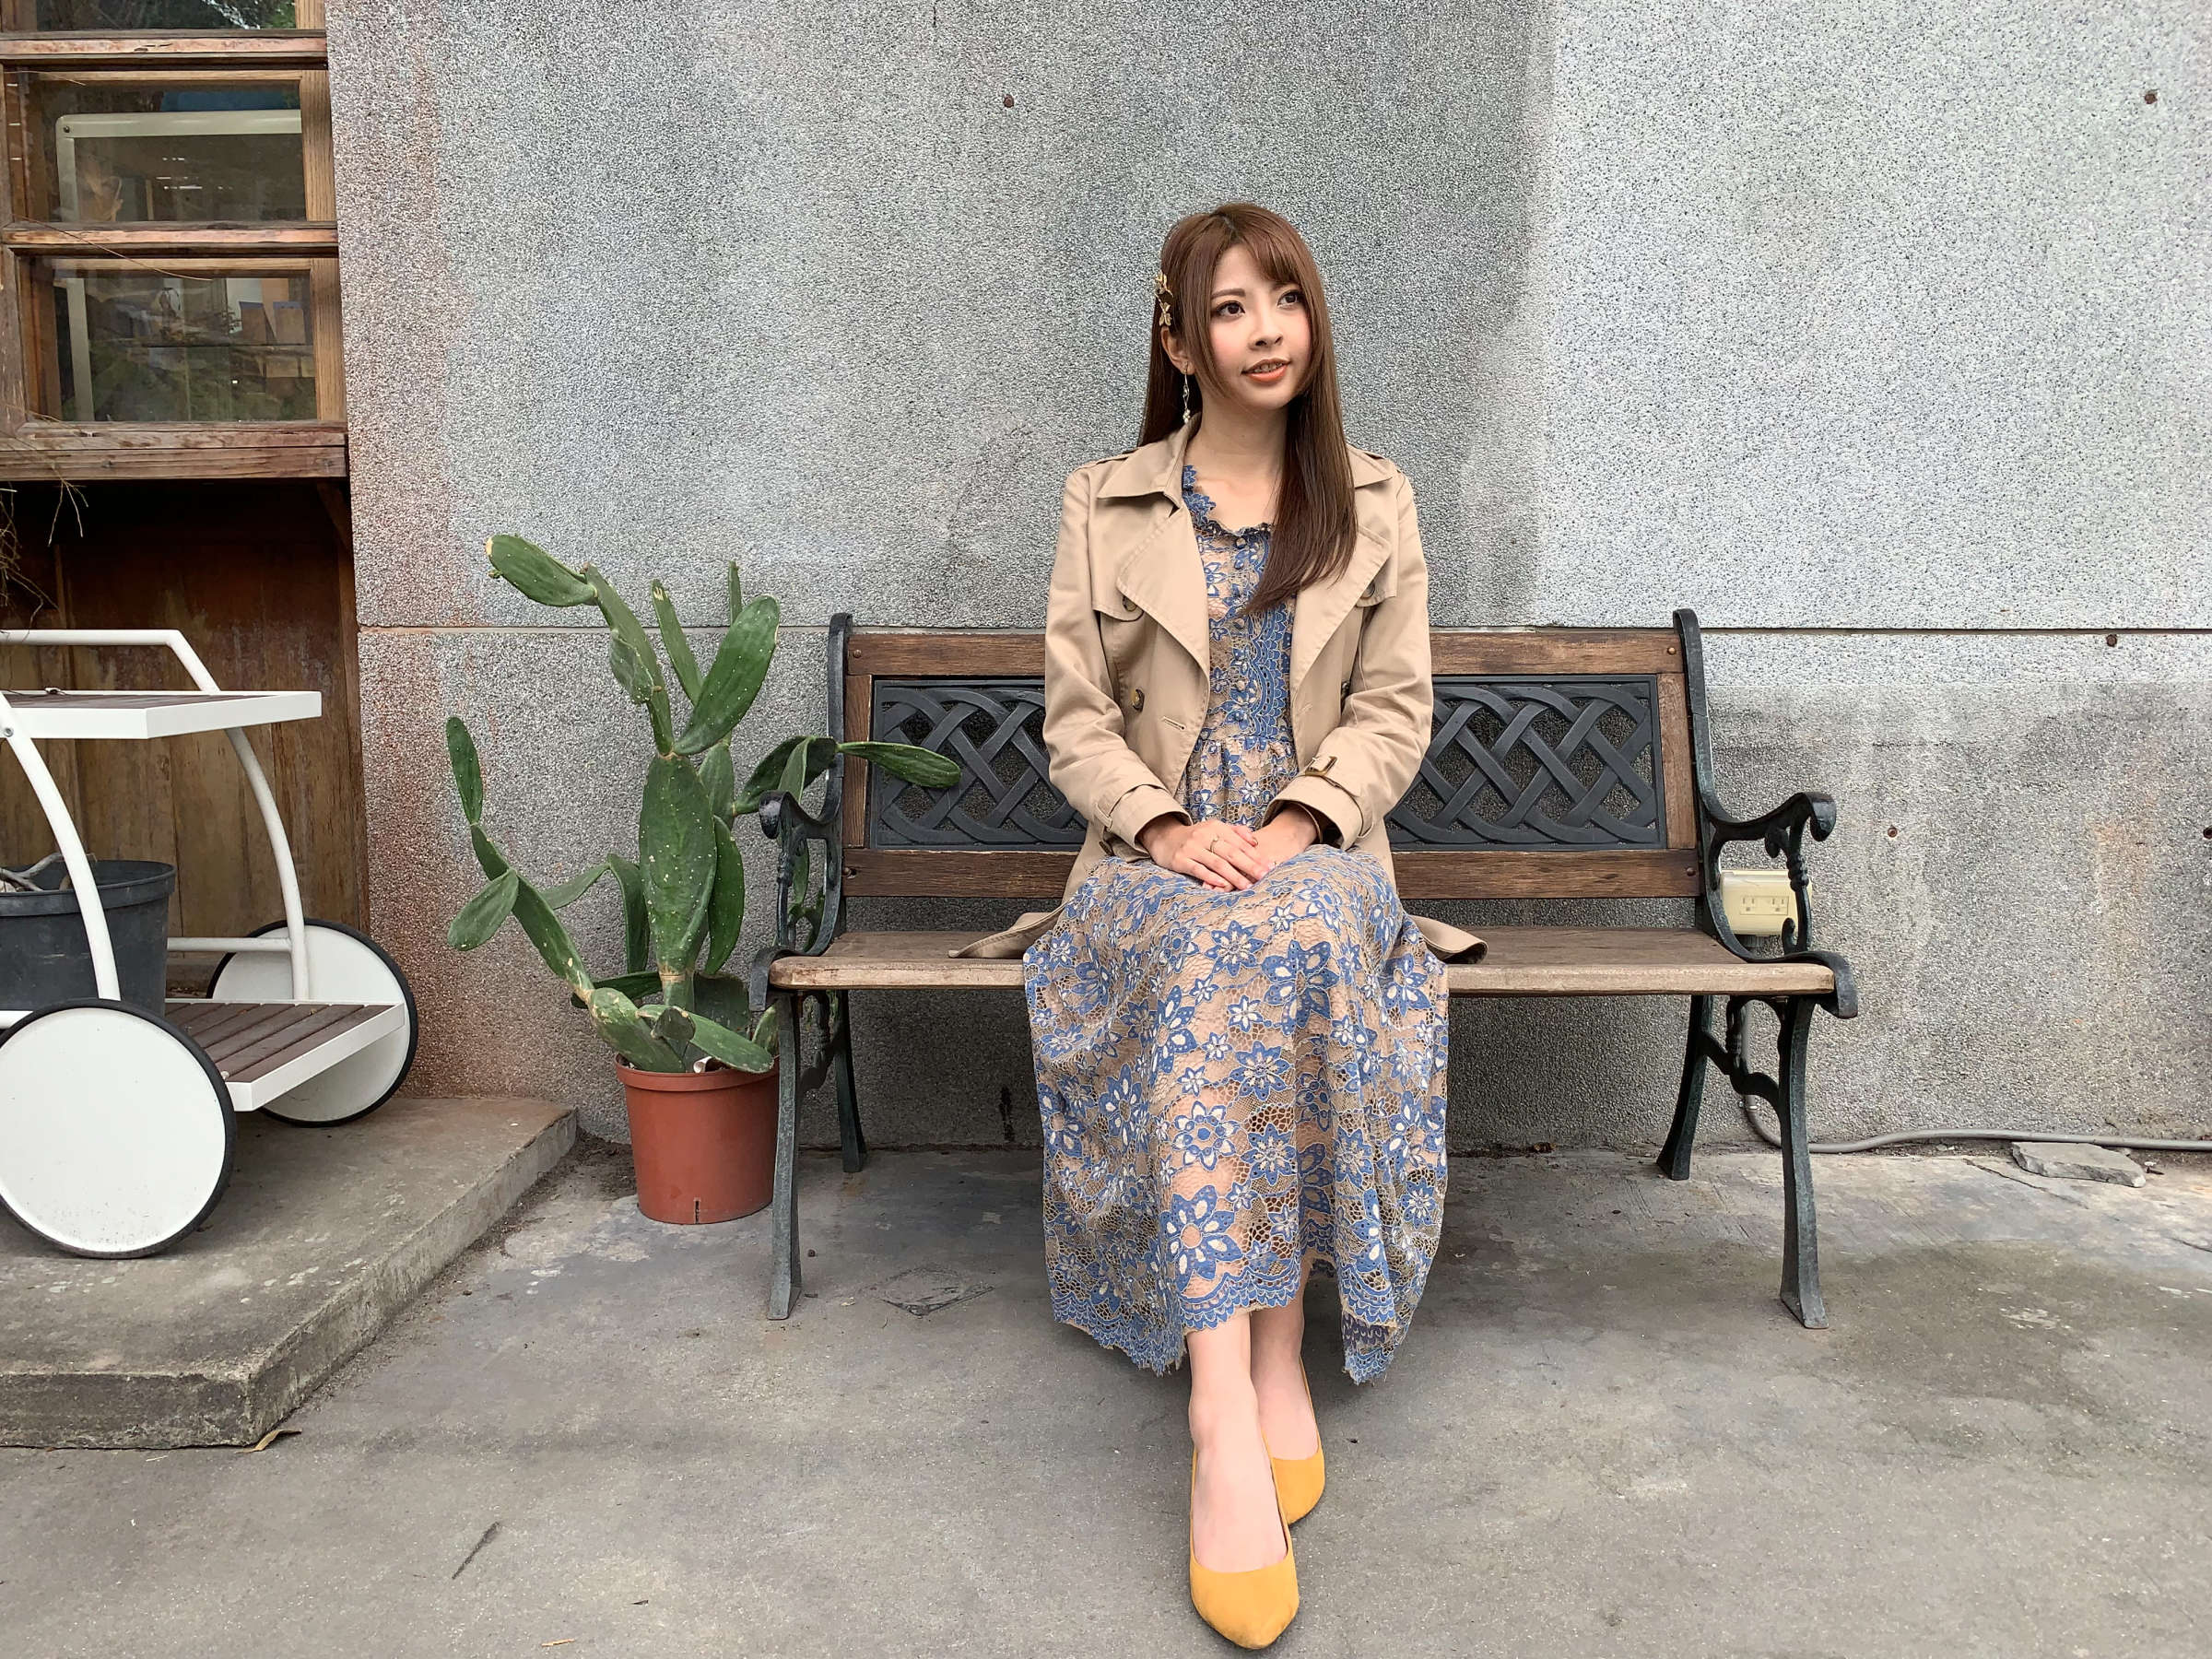 Jeans, Denim, Dress, Skirt, Outerwear, Shoe, Shoulder, Pattern, shoulder, clothing, shoulder, sitting, denim, jeans, outerwear, dress, girl, pattern, shoe